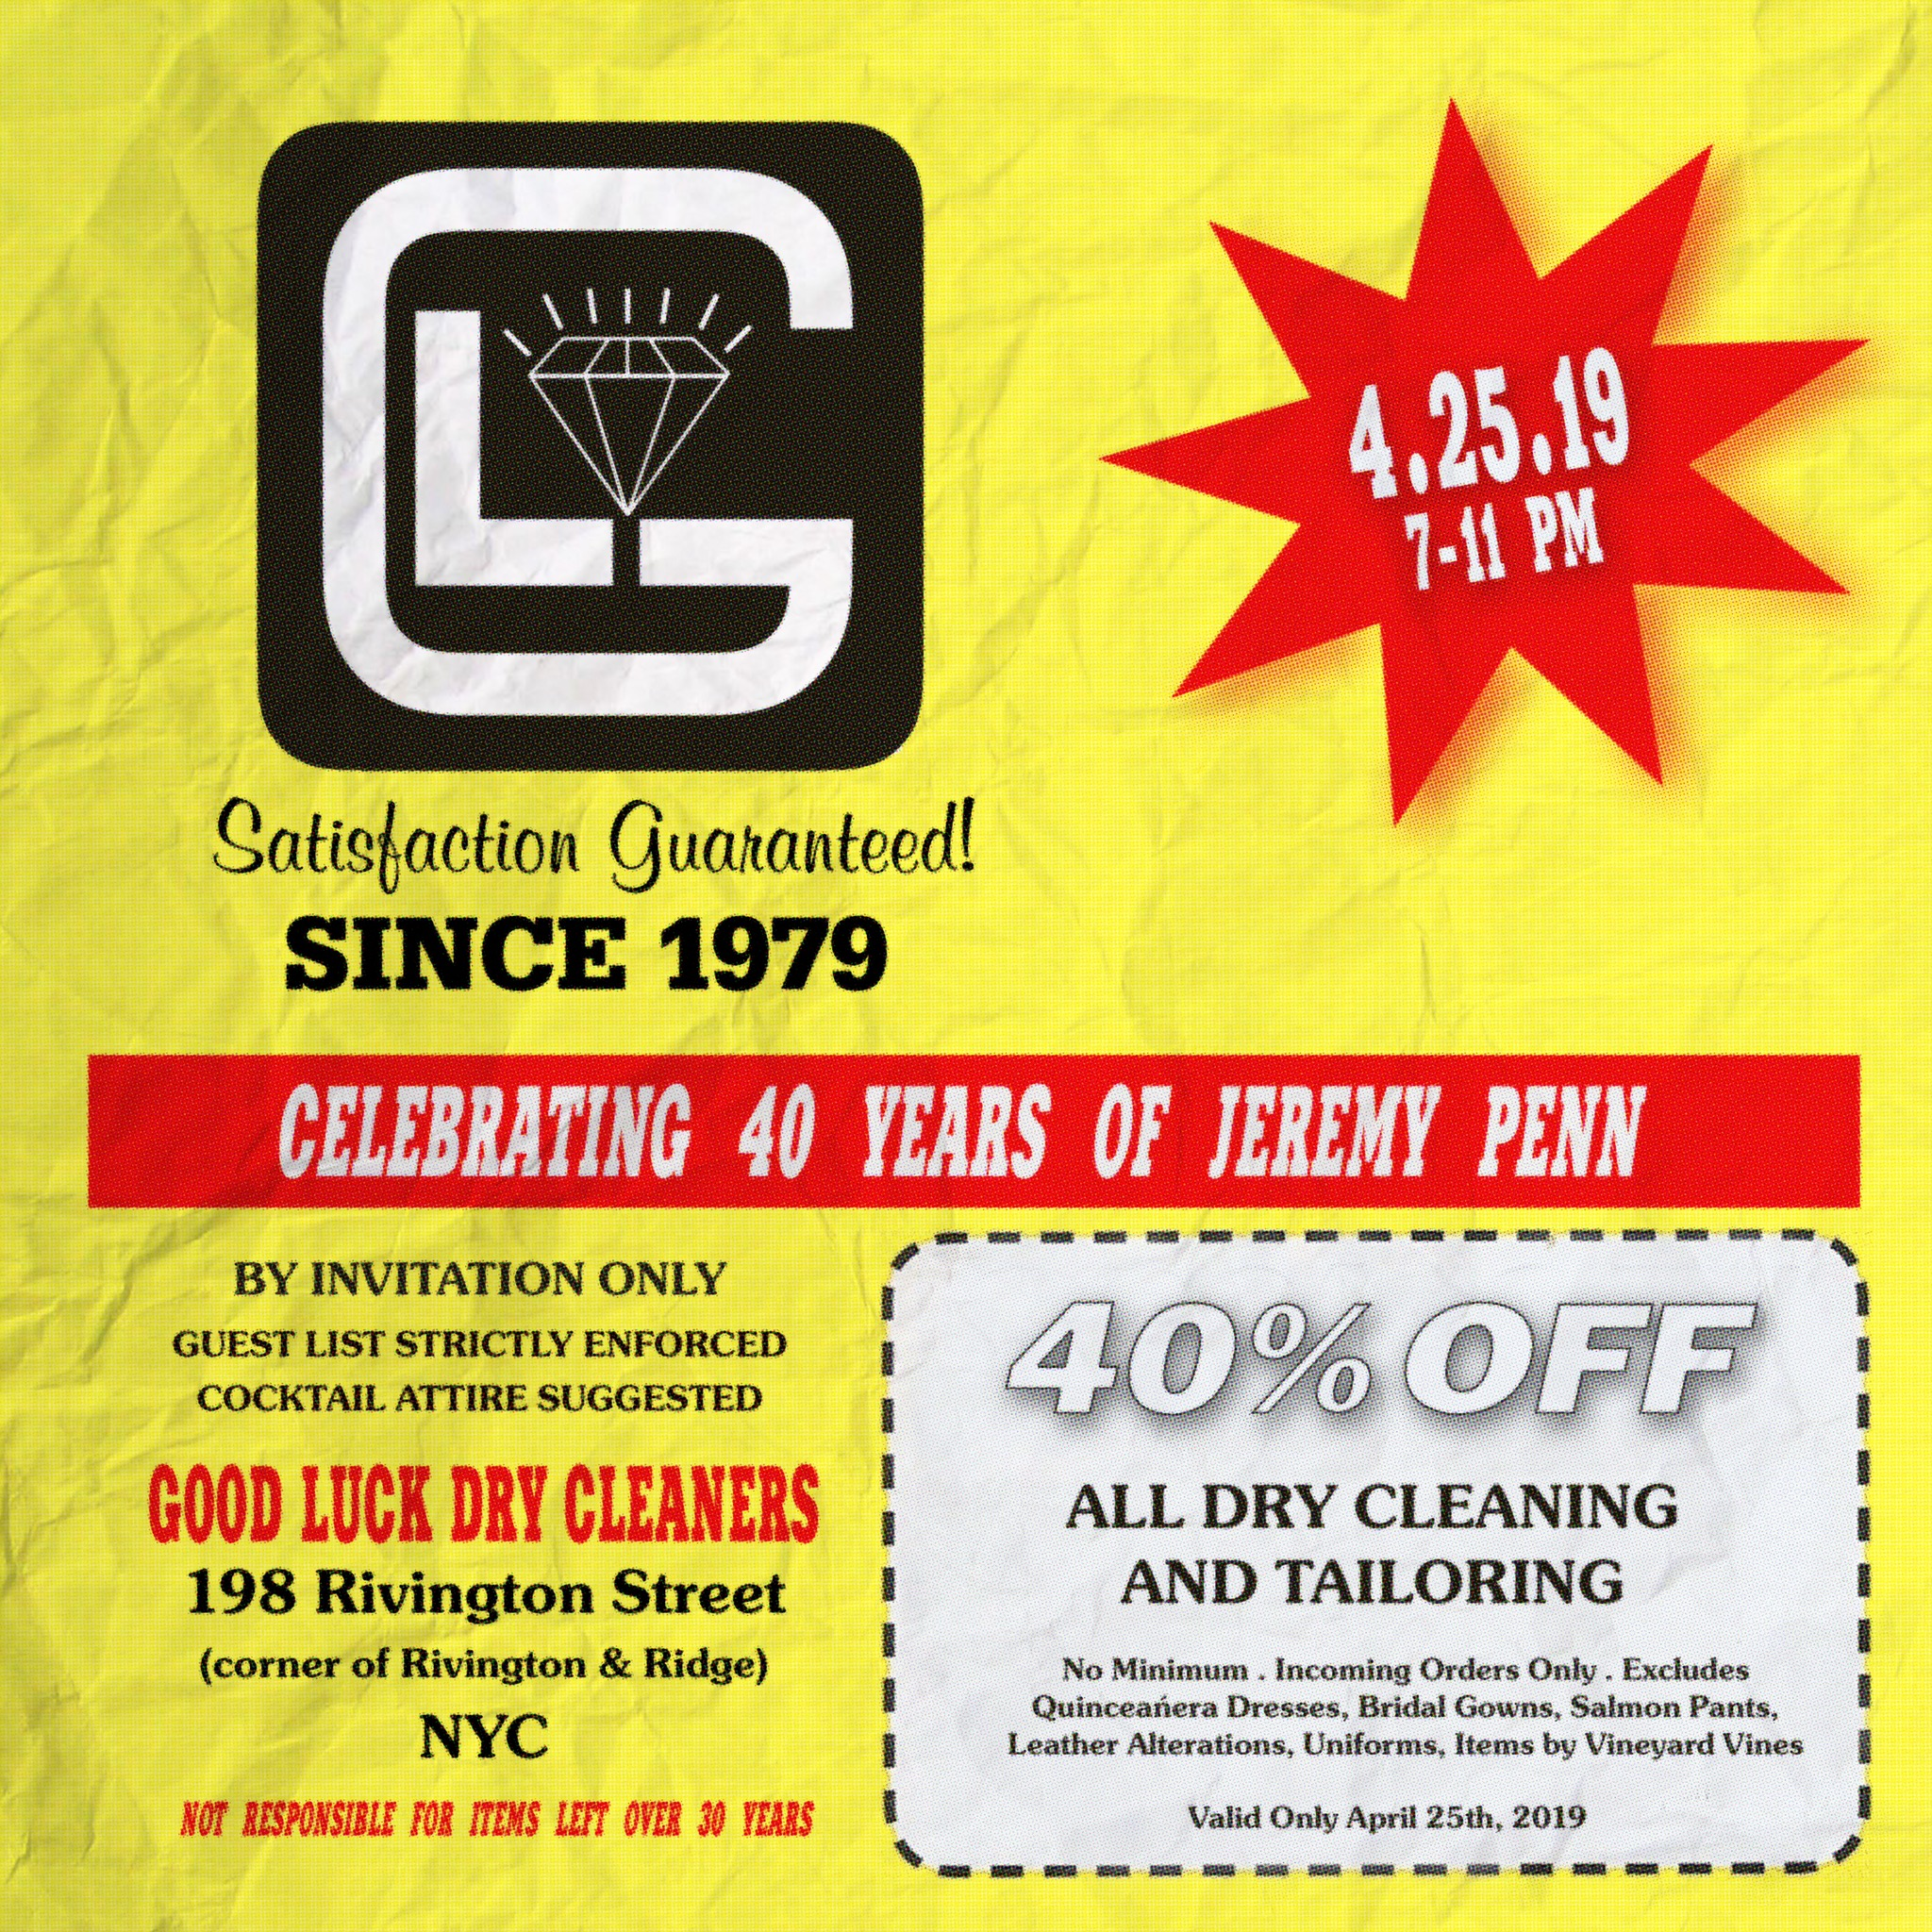 Good luck dry cleaners - April 25 2019